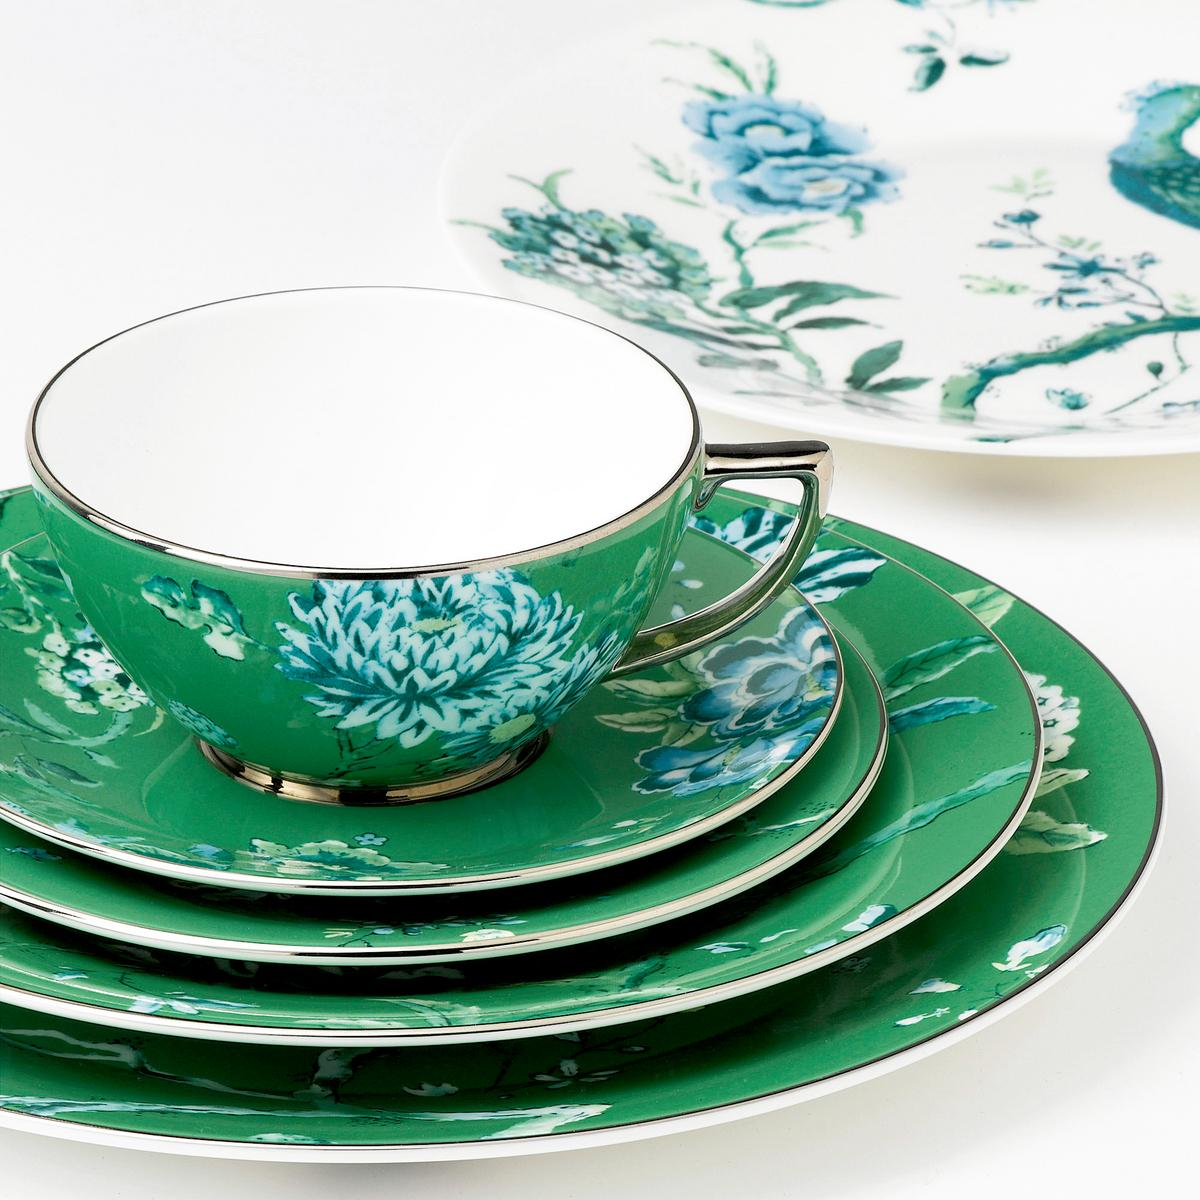 wedgwood jasper conran chinoiserie green dinnerware. Black Bedroom Furniture Sets. Home Design Ideas